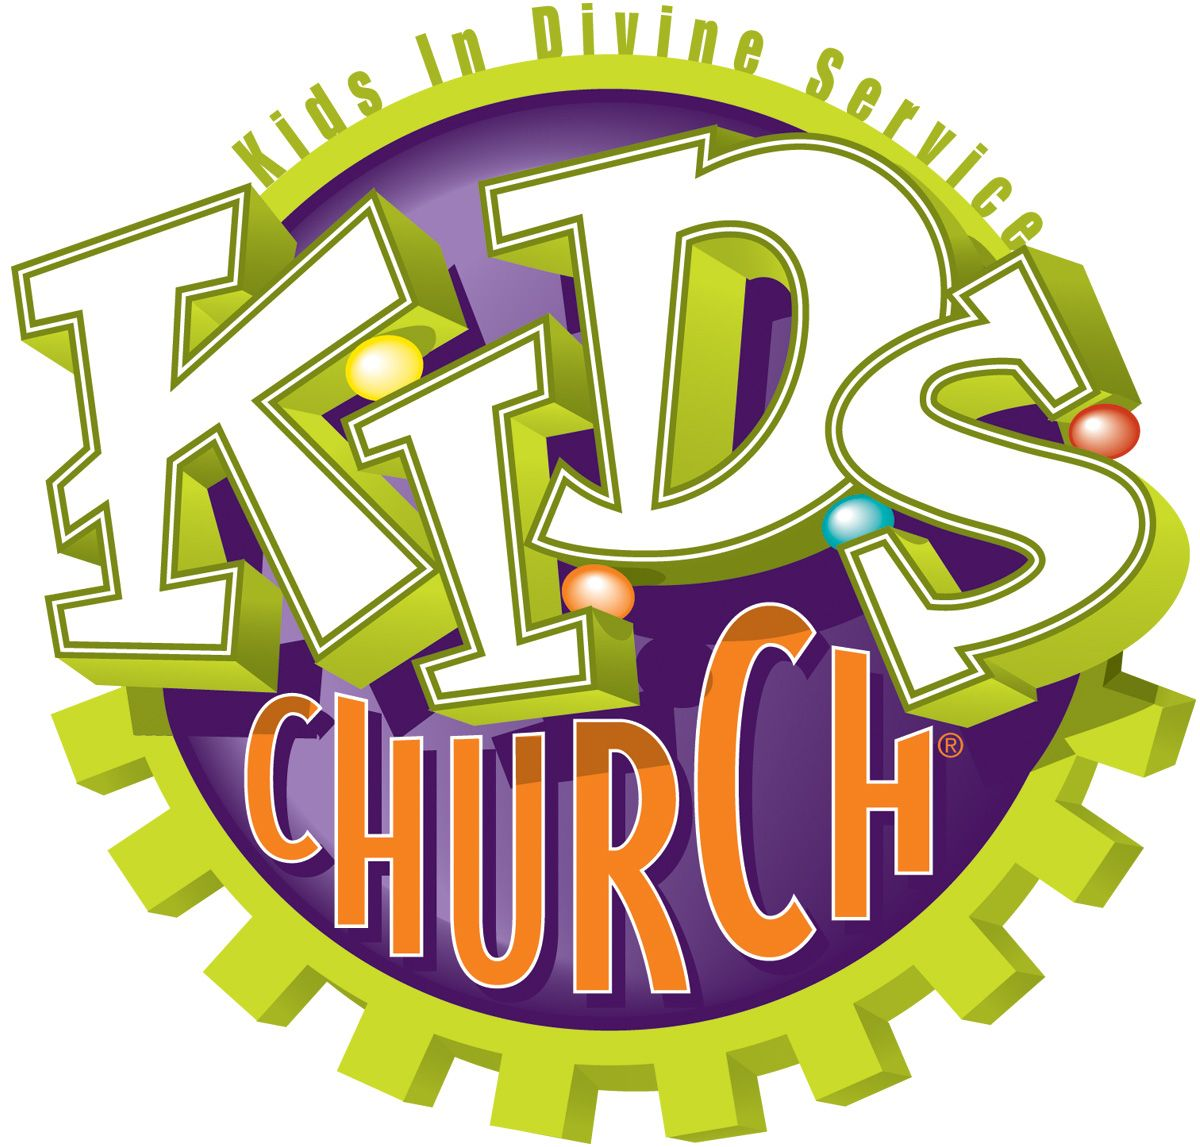 Church Nursery Pictures Google Search: Childrens Ministry Logo - Google Search